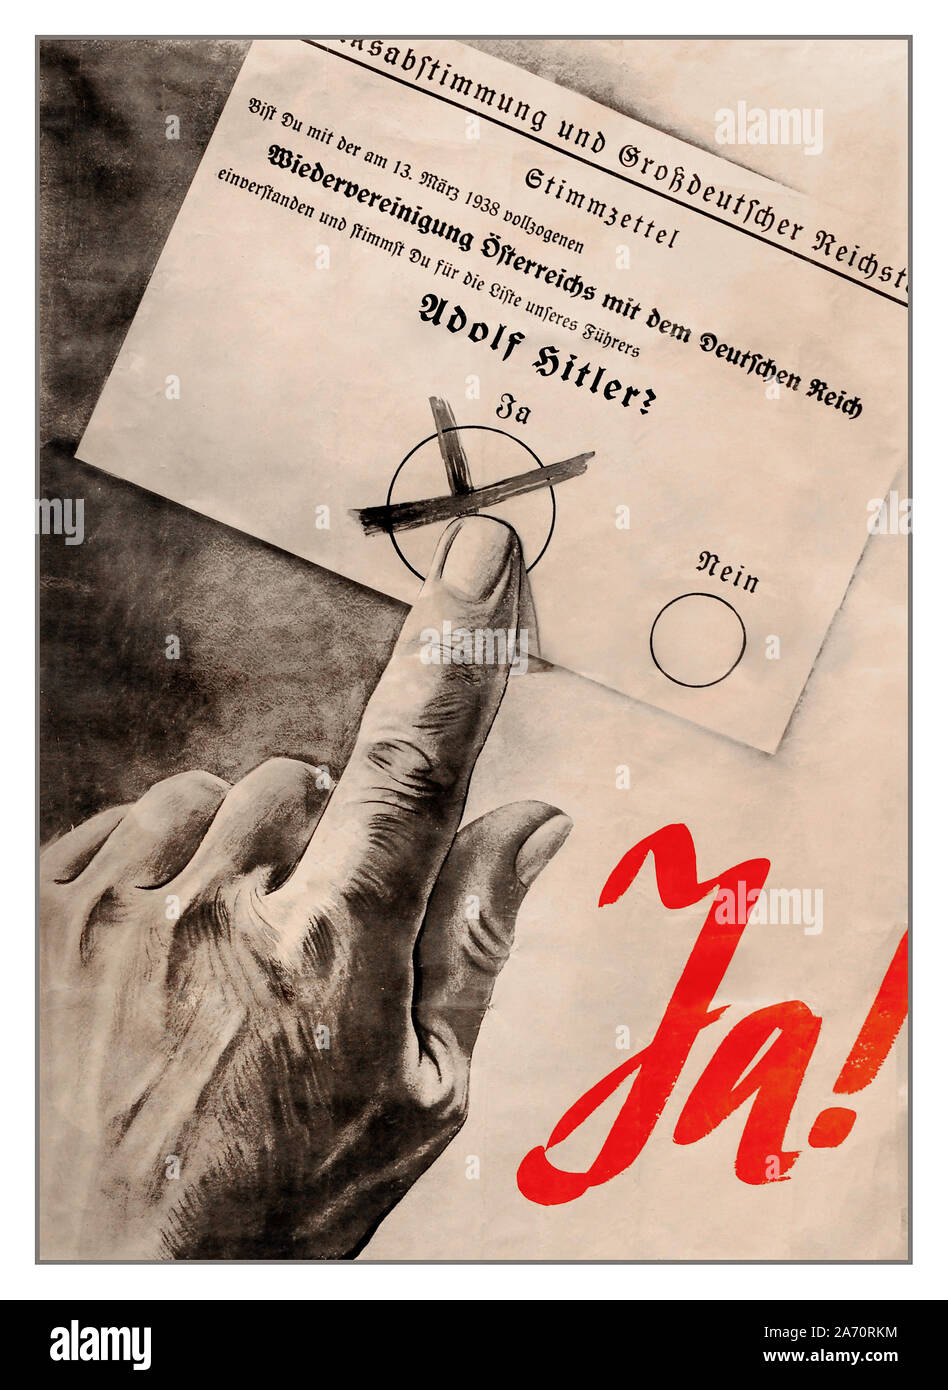 ANSCHLUSS 1938 Nazi Propaganda Poster Adolf Hitler Voting Paper 'JA'  A Third Reich Nazi poster for a Yes vote for Adolf Hitler in the referendum in Austria following the Anschluss in 1938, German annexation and reunification with Austria. The result was 97% of the population voted for reunification and inclusion in Hitler's Third Reich Germany Stock Photo